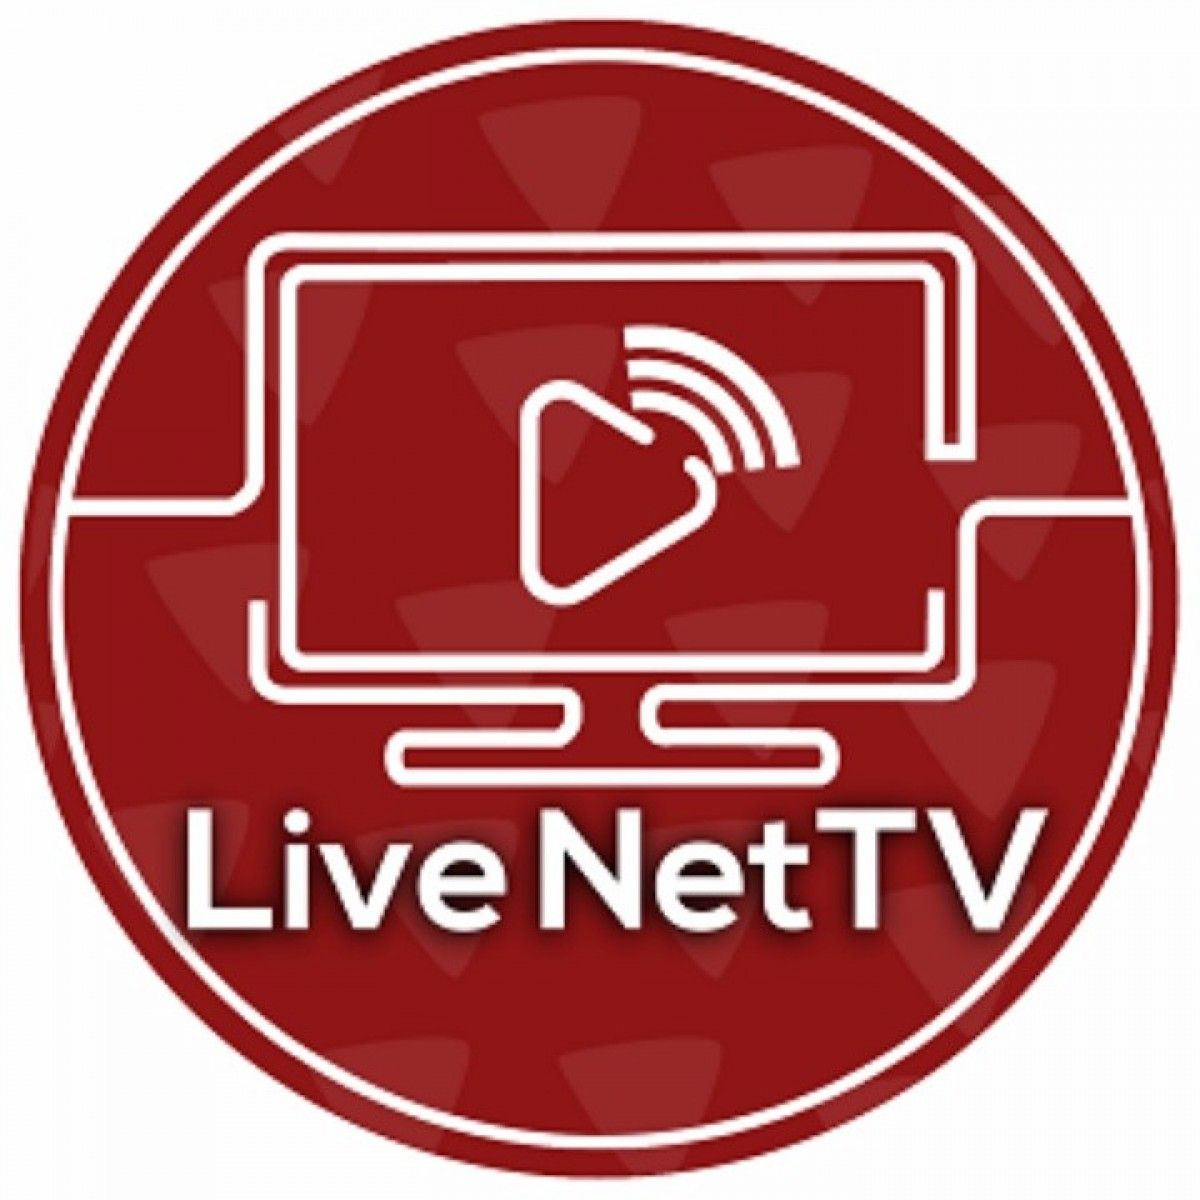 Live NetTV 4 7 - Download for Android APK Free - Usama Tech Live